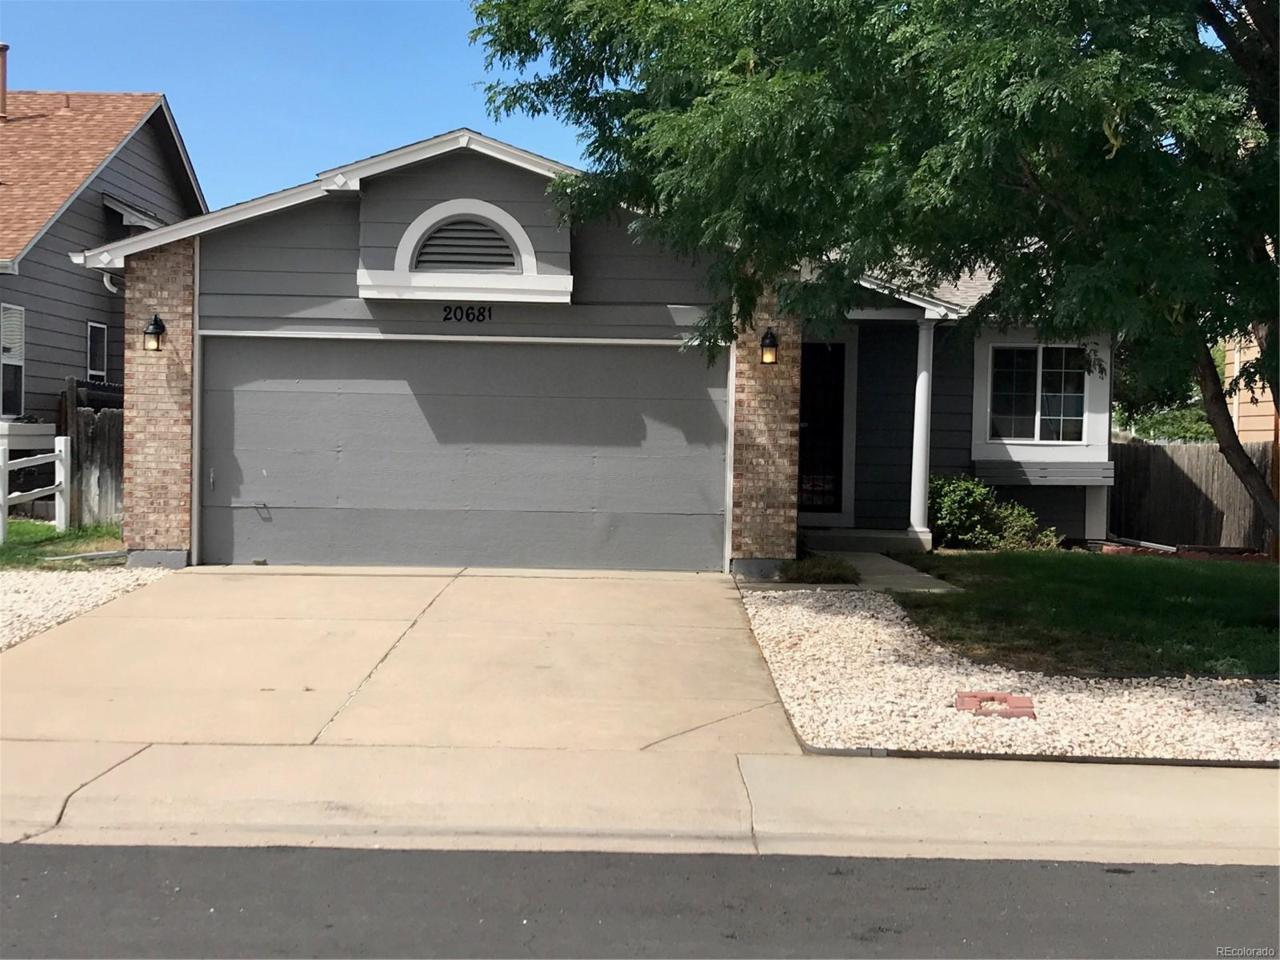 20681 E Scott Circle, Denver, CO 80249 (MLS #4983987) :: 8z Real Estate